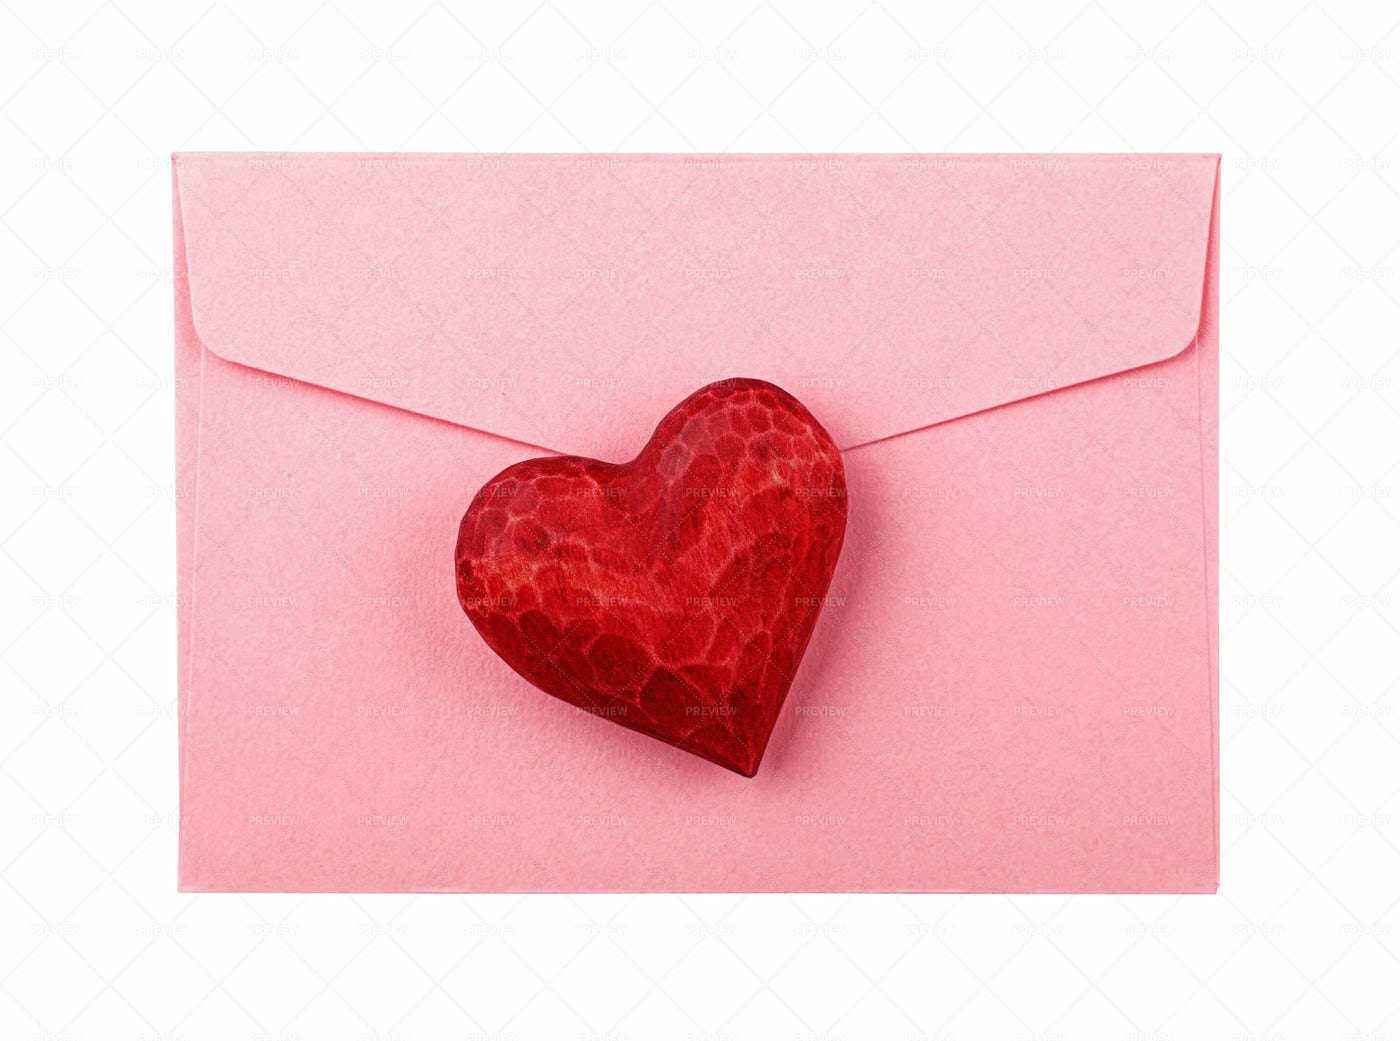 Red Wooden Heart On Envelope: Stock Photos